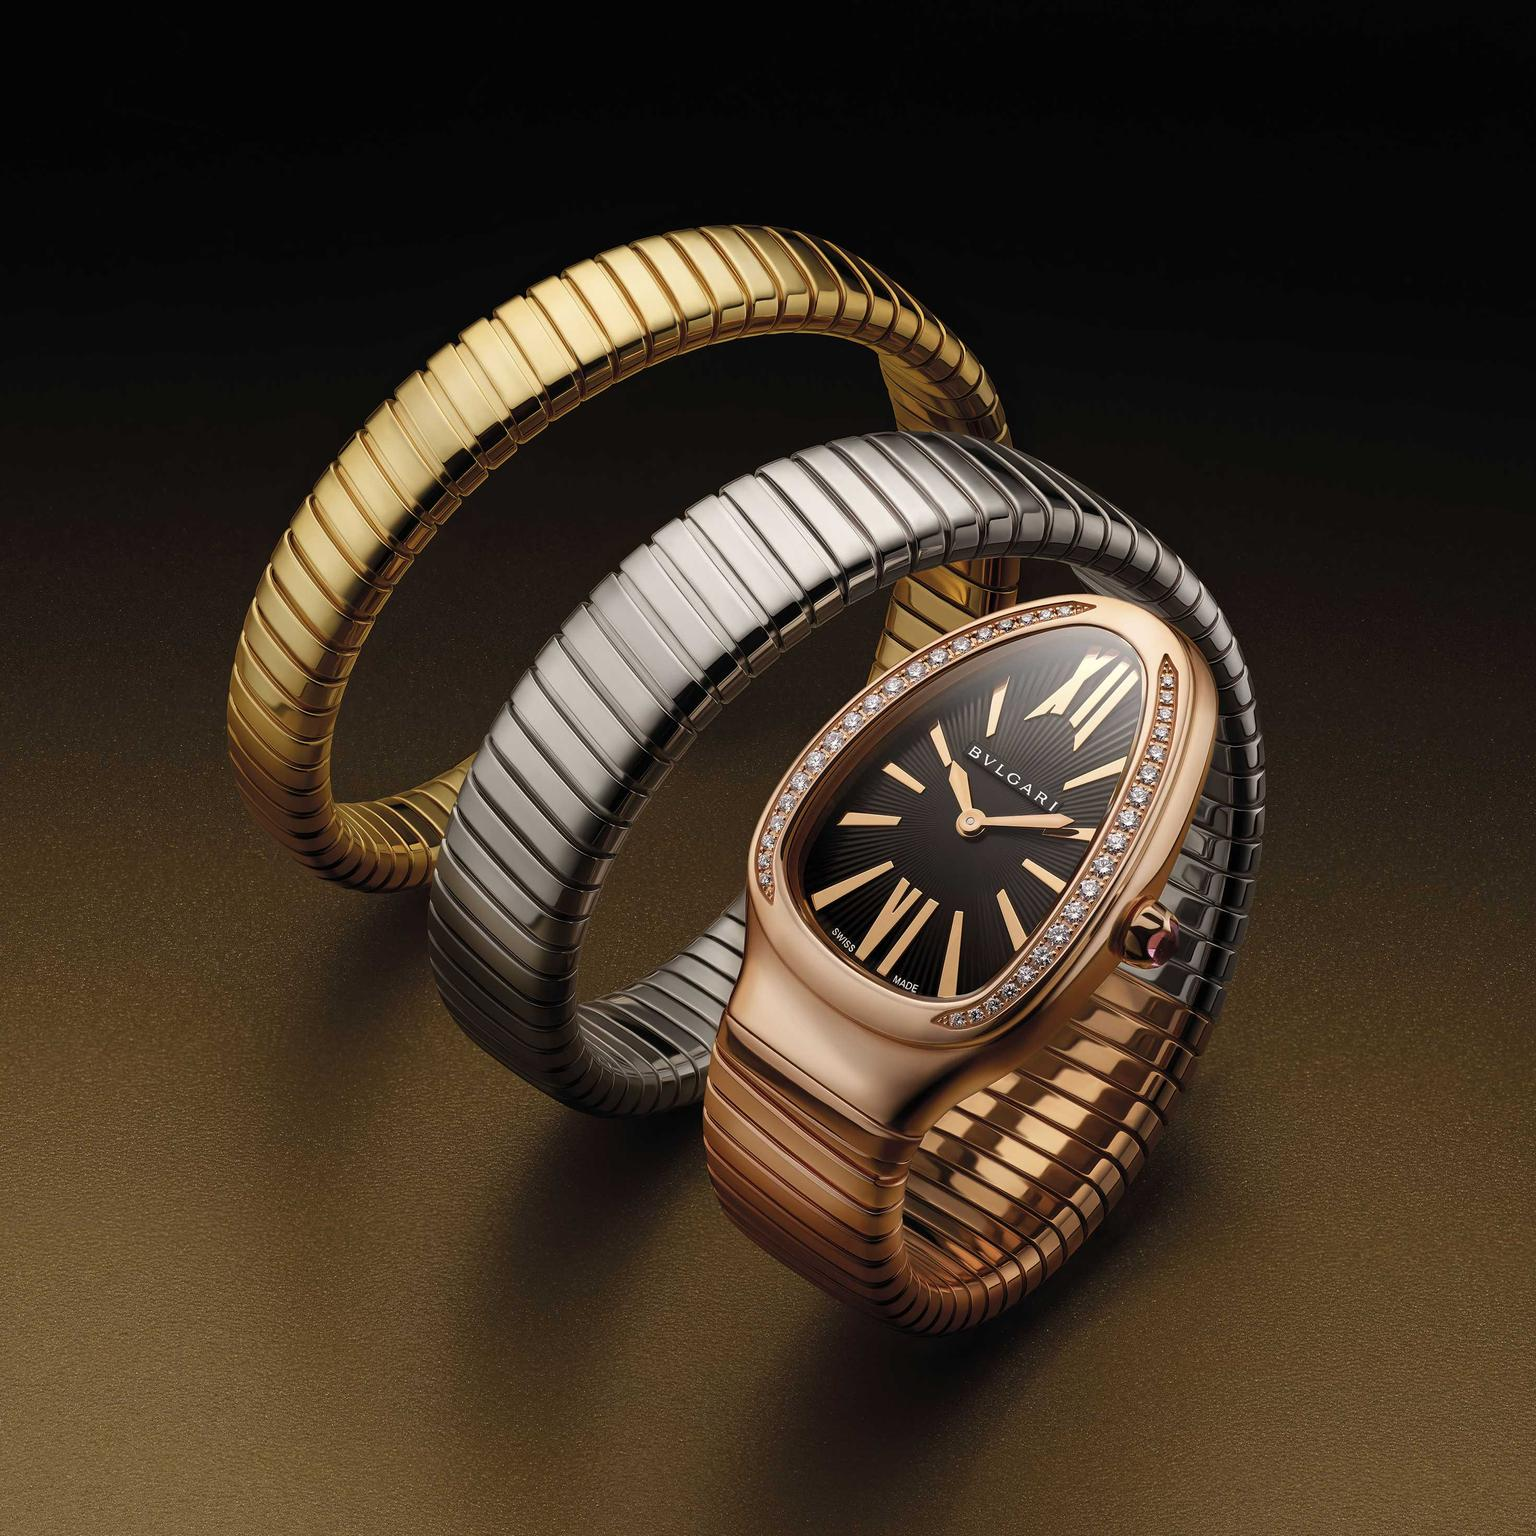 Bulgari Serpenti Tubogas double coil ladies watch in three colours of gold